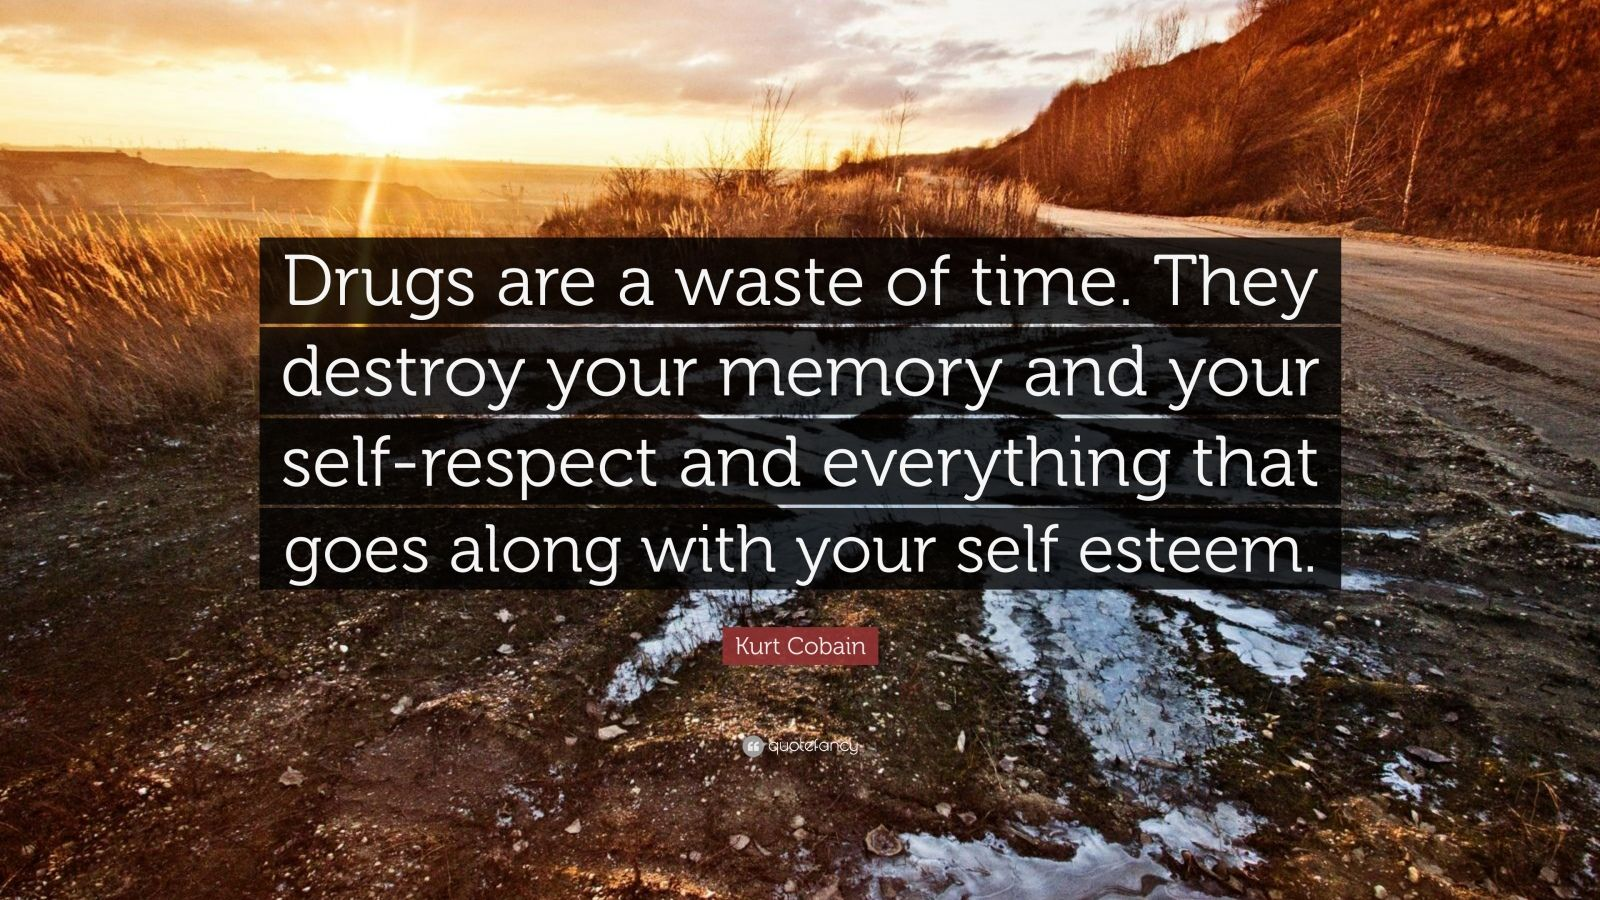 """Kurt Cobain Quote: """"Drugs are a waste of time. They destroy your memory and your self-respect and everything that goes along with your self esteem."""""""